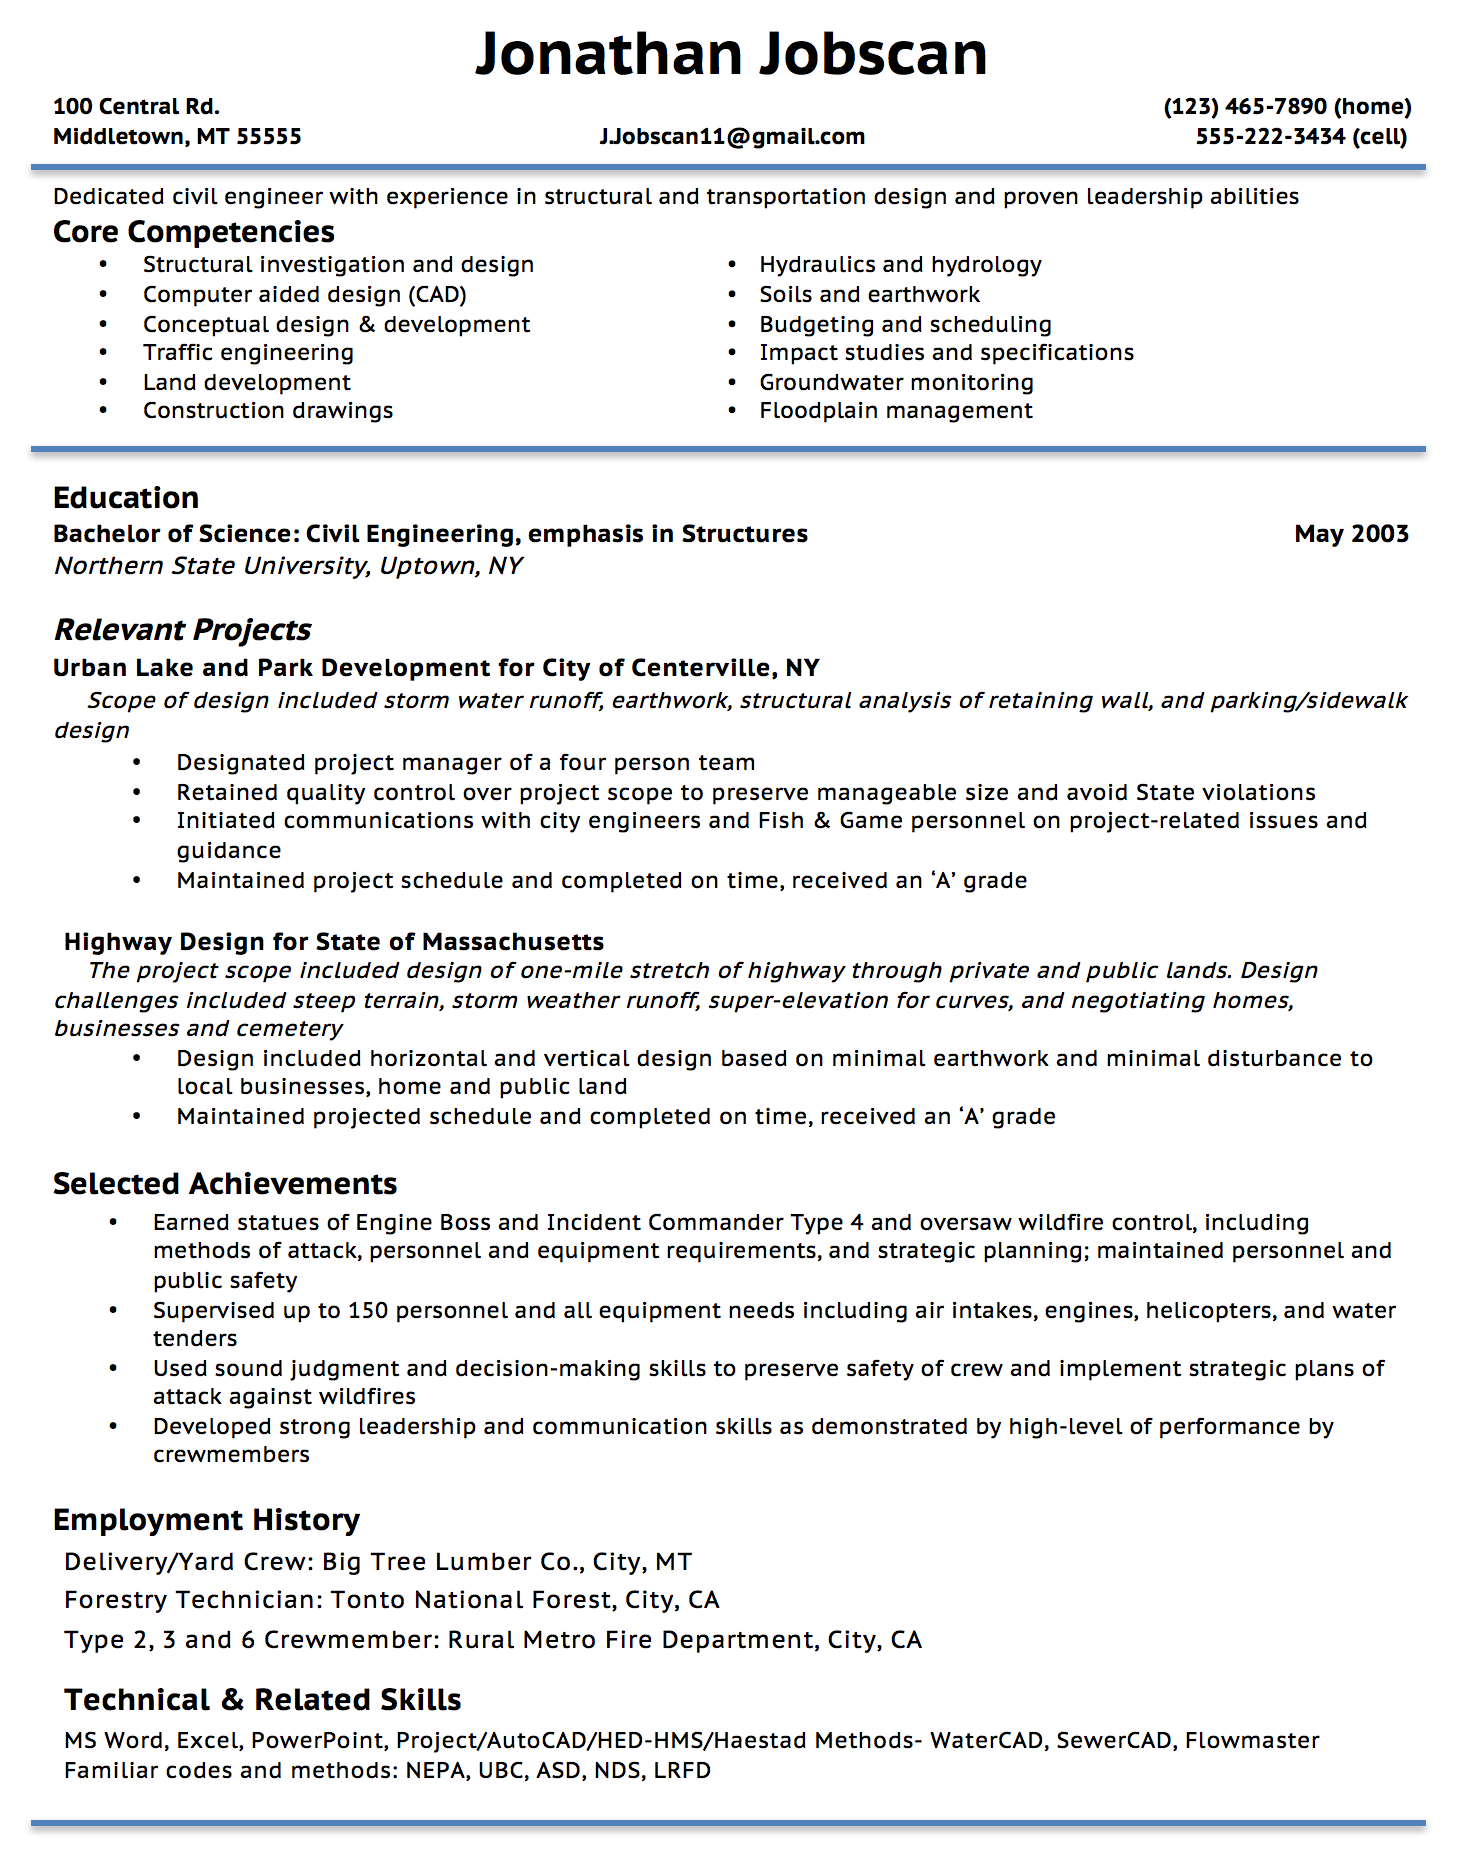 Opposenewapstandardsus  Wonderful Resume Writing Guide  Jobscan With Lovely Example Of A Functional Resume Format With Beautiful Speech Language Pathology Resume Also Resume Monster In Addition Resume Formating And Resume Format Microsoft Word As Well As Servers Resume Additionally Resume Tempate From Jobscanco With Opposenewapstandardsus  Lovely Resume Writing Guide  Jobscan With Beautiful Example Of A Functional Resume Format And Wonderful Speech Language Pathology Resume Also Resume Monster In Addition Resume Formating From Jobscanco